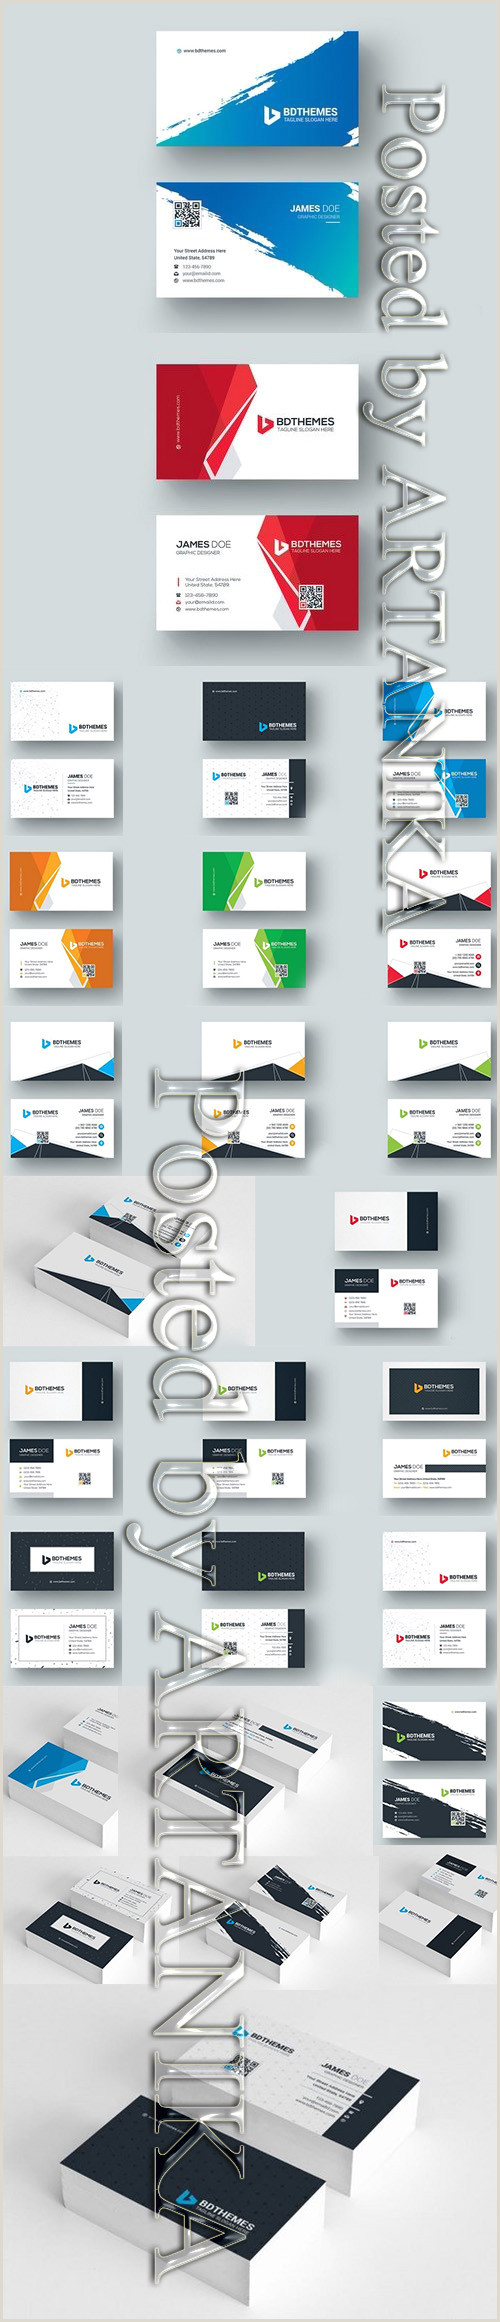 Business Card Template With Social Media Icons Veterinarian Business Card Template Avaxgfx All